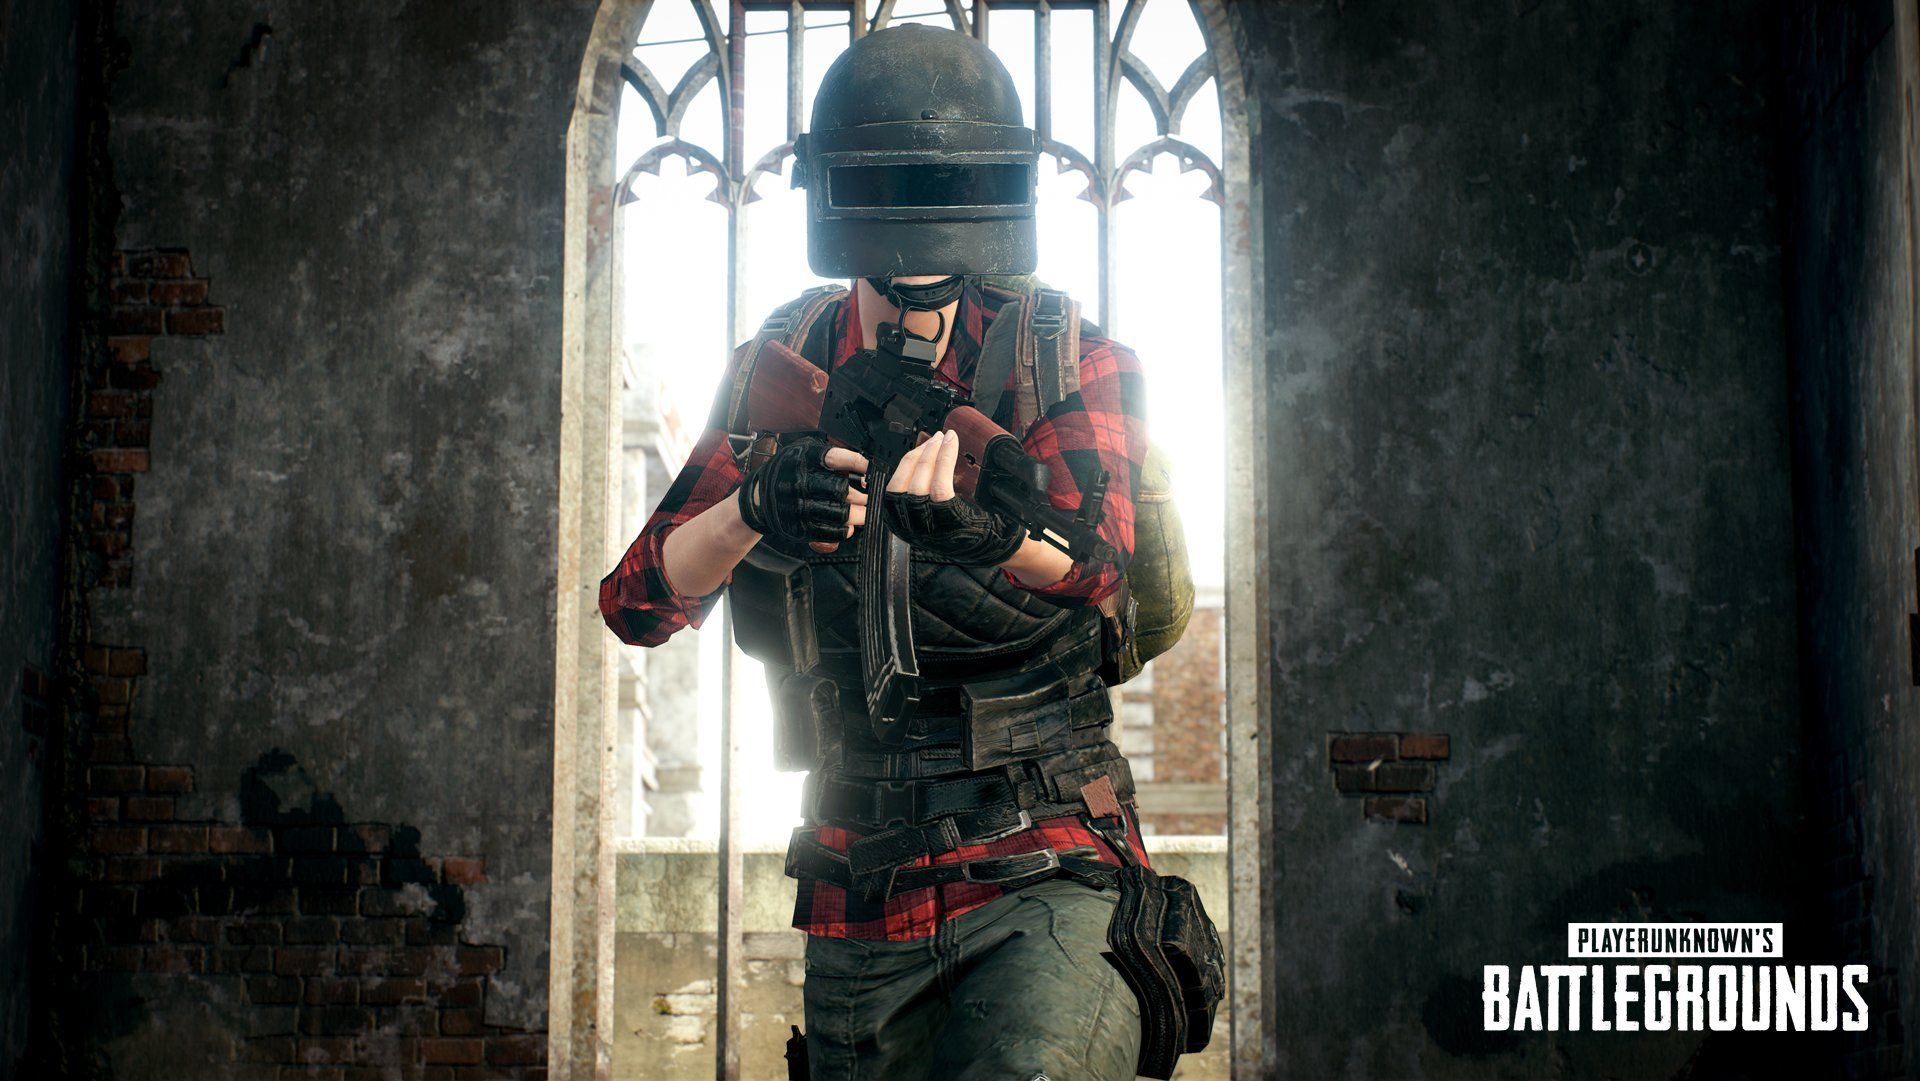 Pubg Hd Wallpaper Snow: 'PUBG' Update 12 Live With Map Select, SLR, Scopes & More